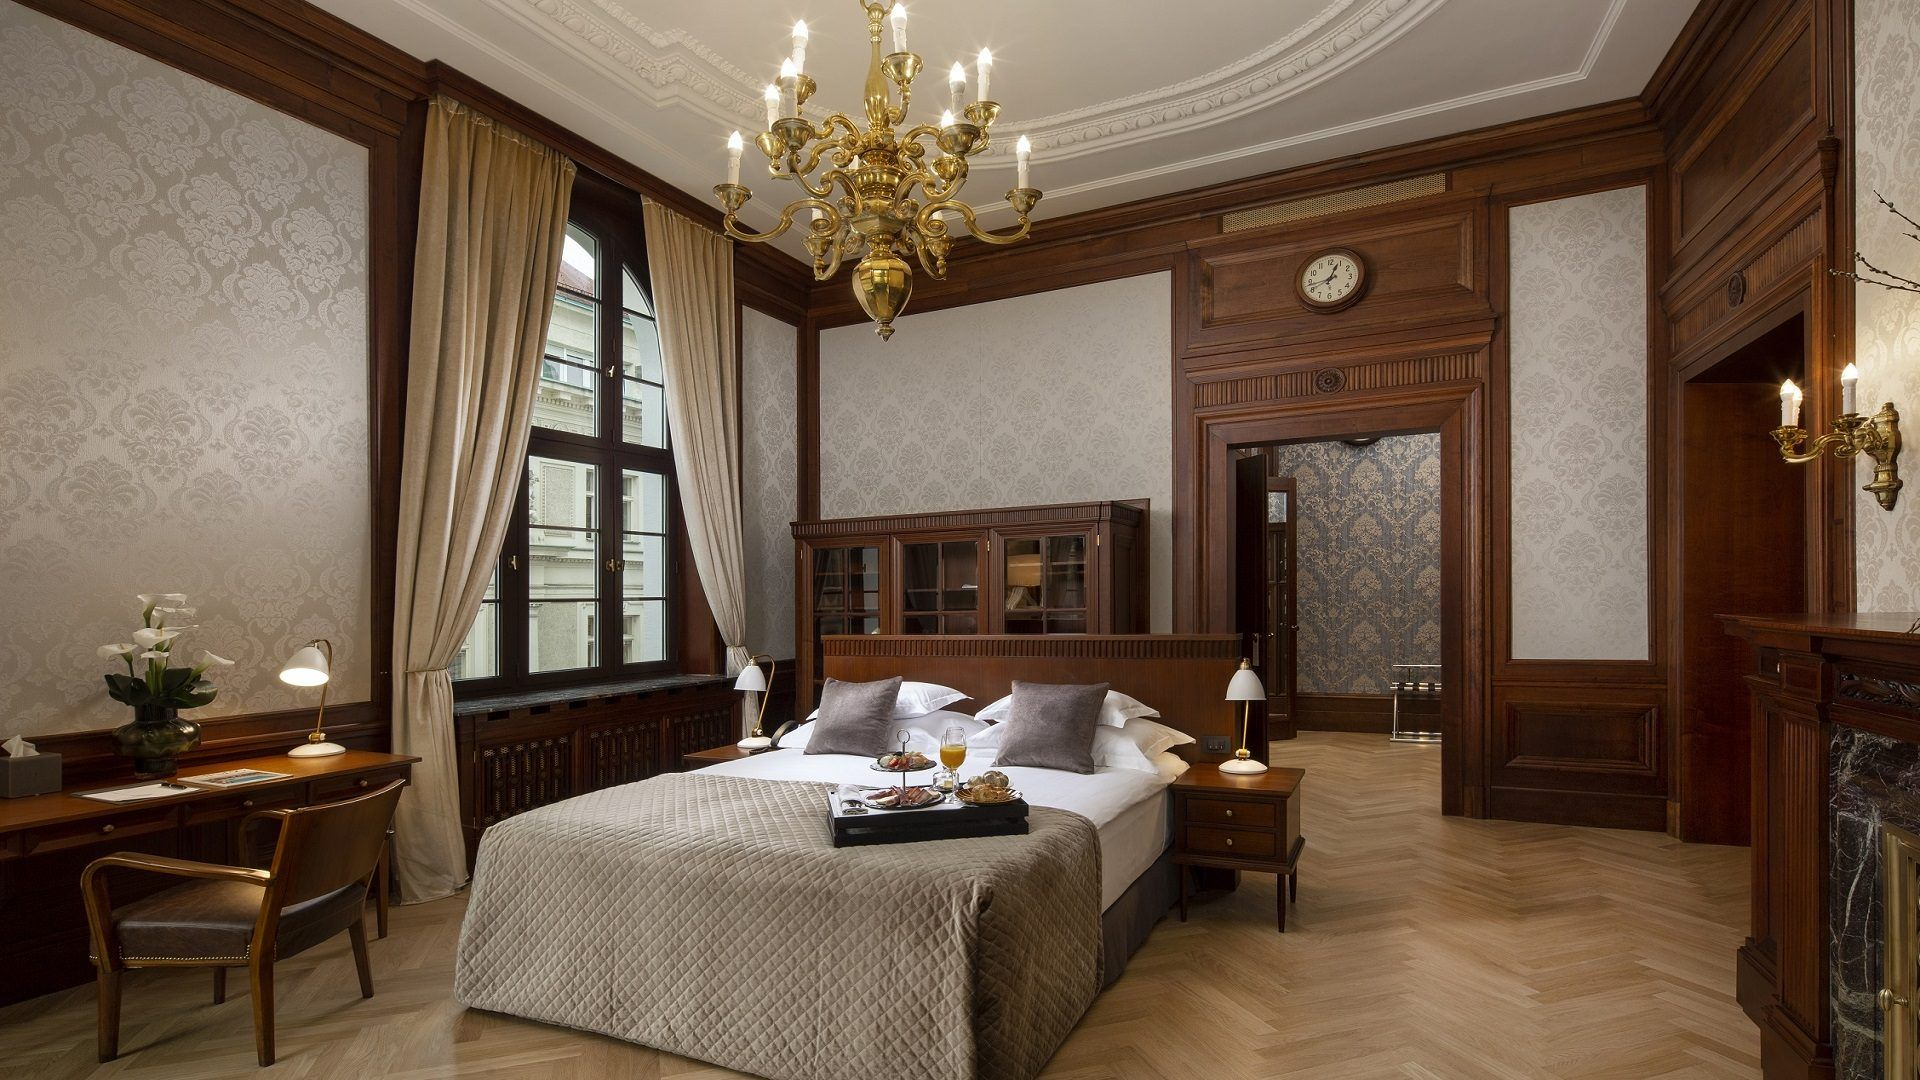 Amadria Park Zagreb Luxury Hotel Bedroom In Croatia Luxury Hotel Bedroom Hotel Heritage Hotel